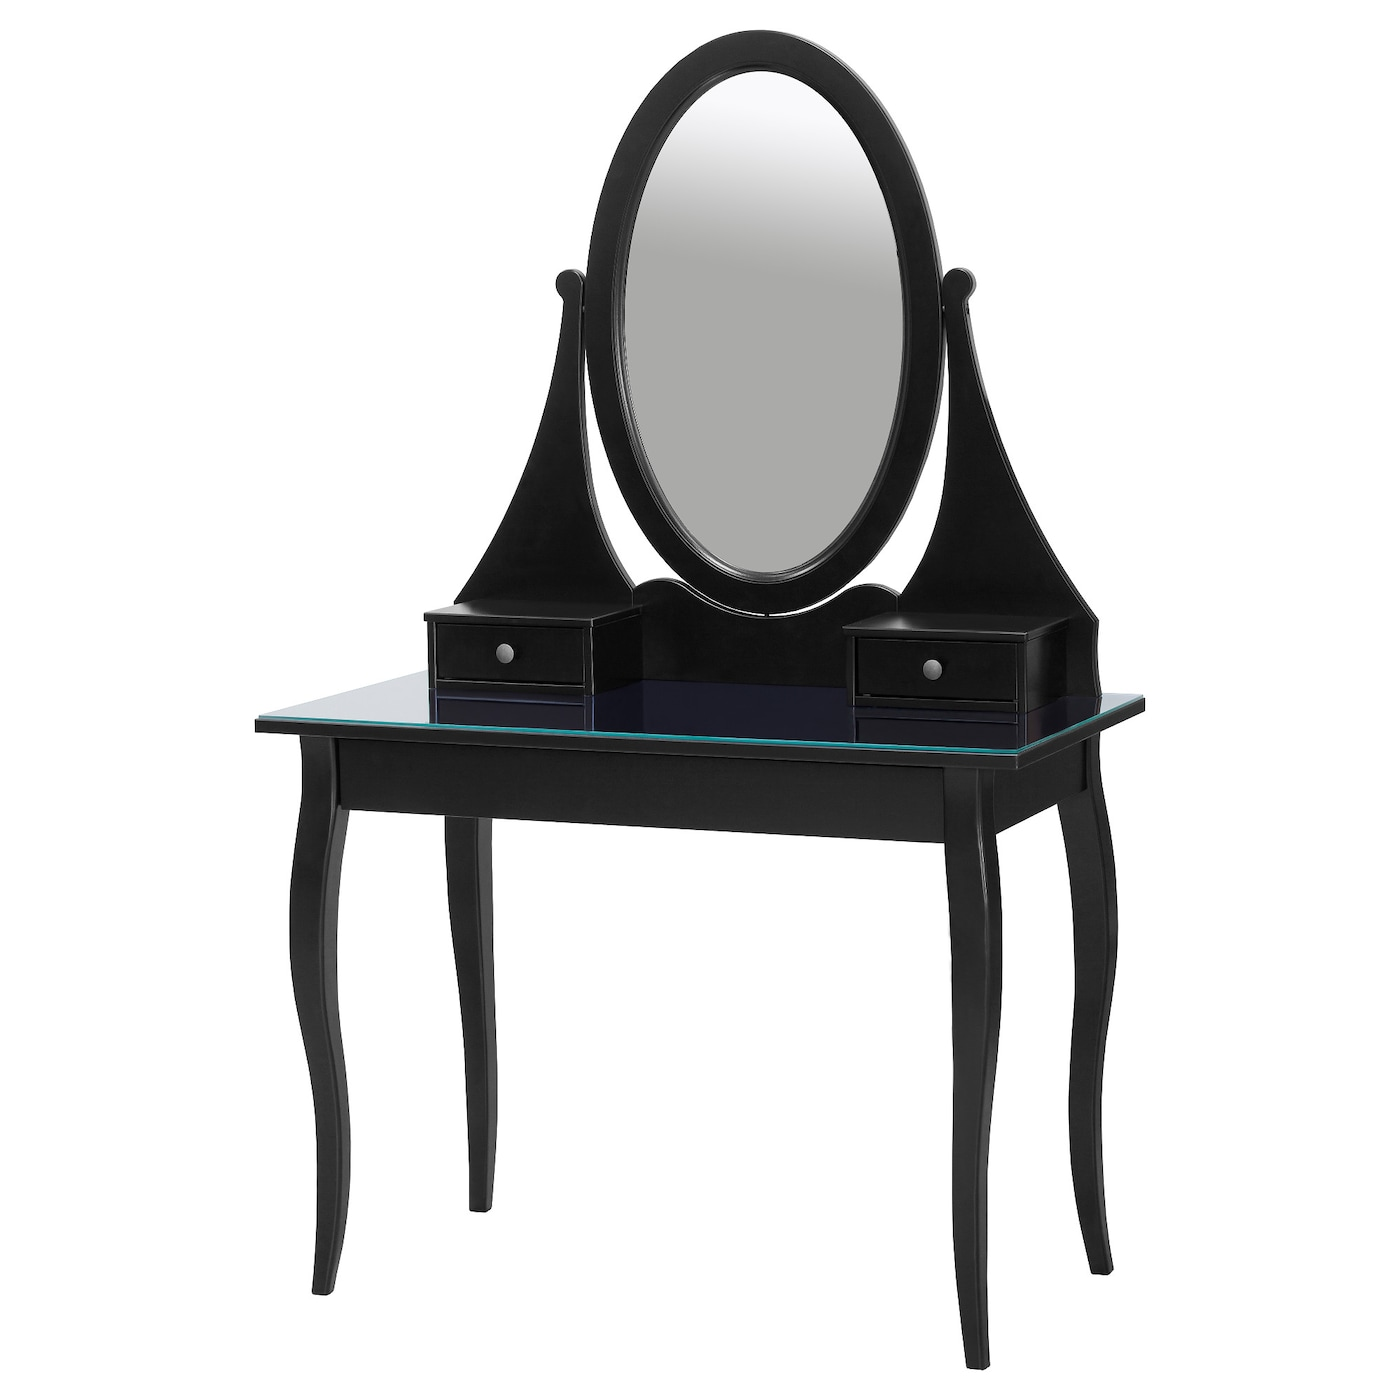 Ikea Hemnes Dressing table with mirror, black, 39 3/8x19 5/8